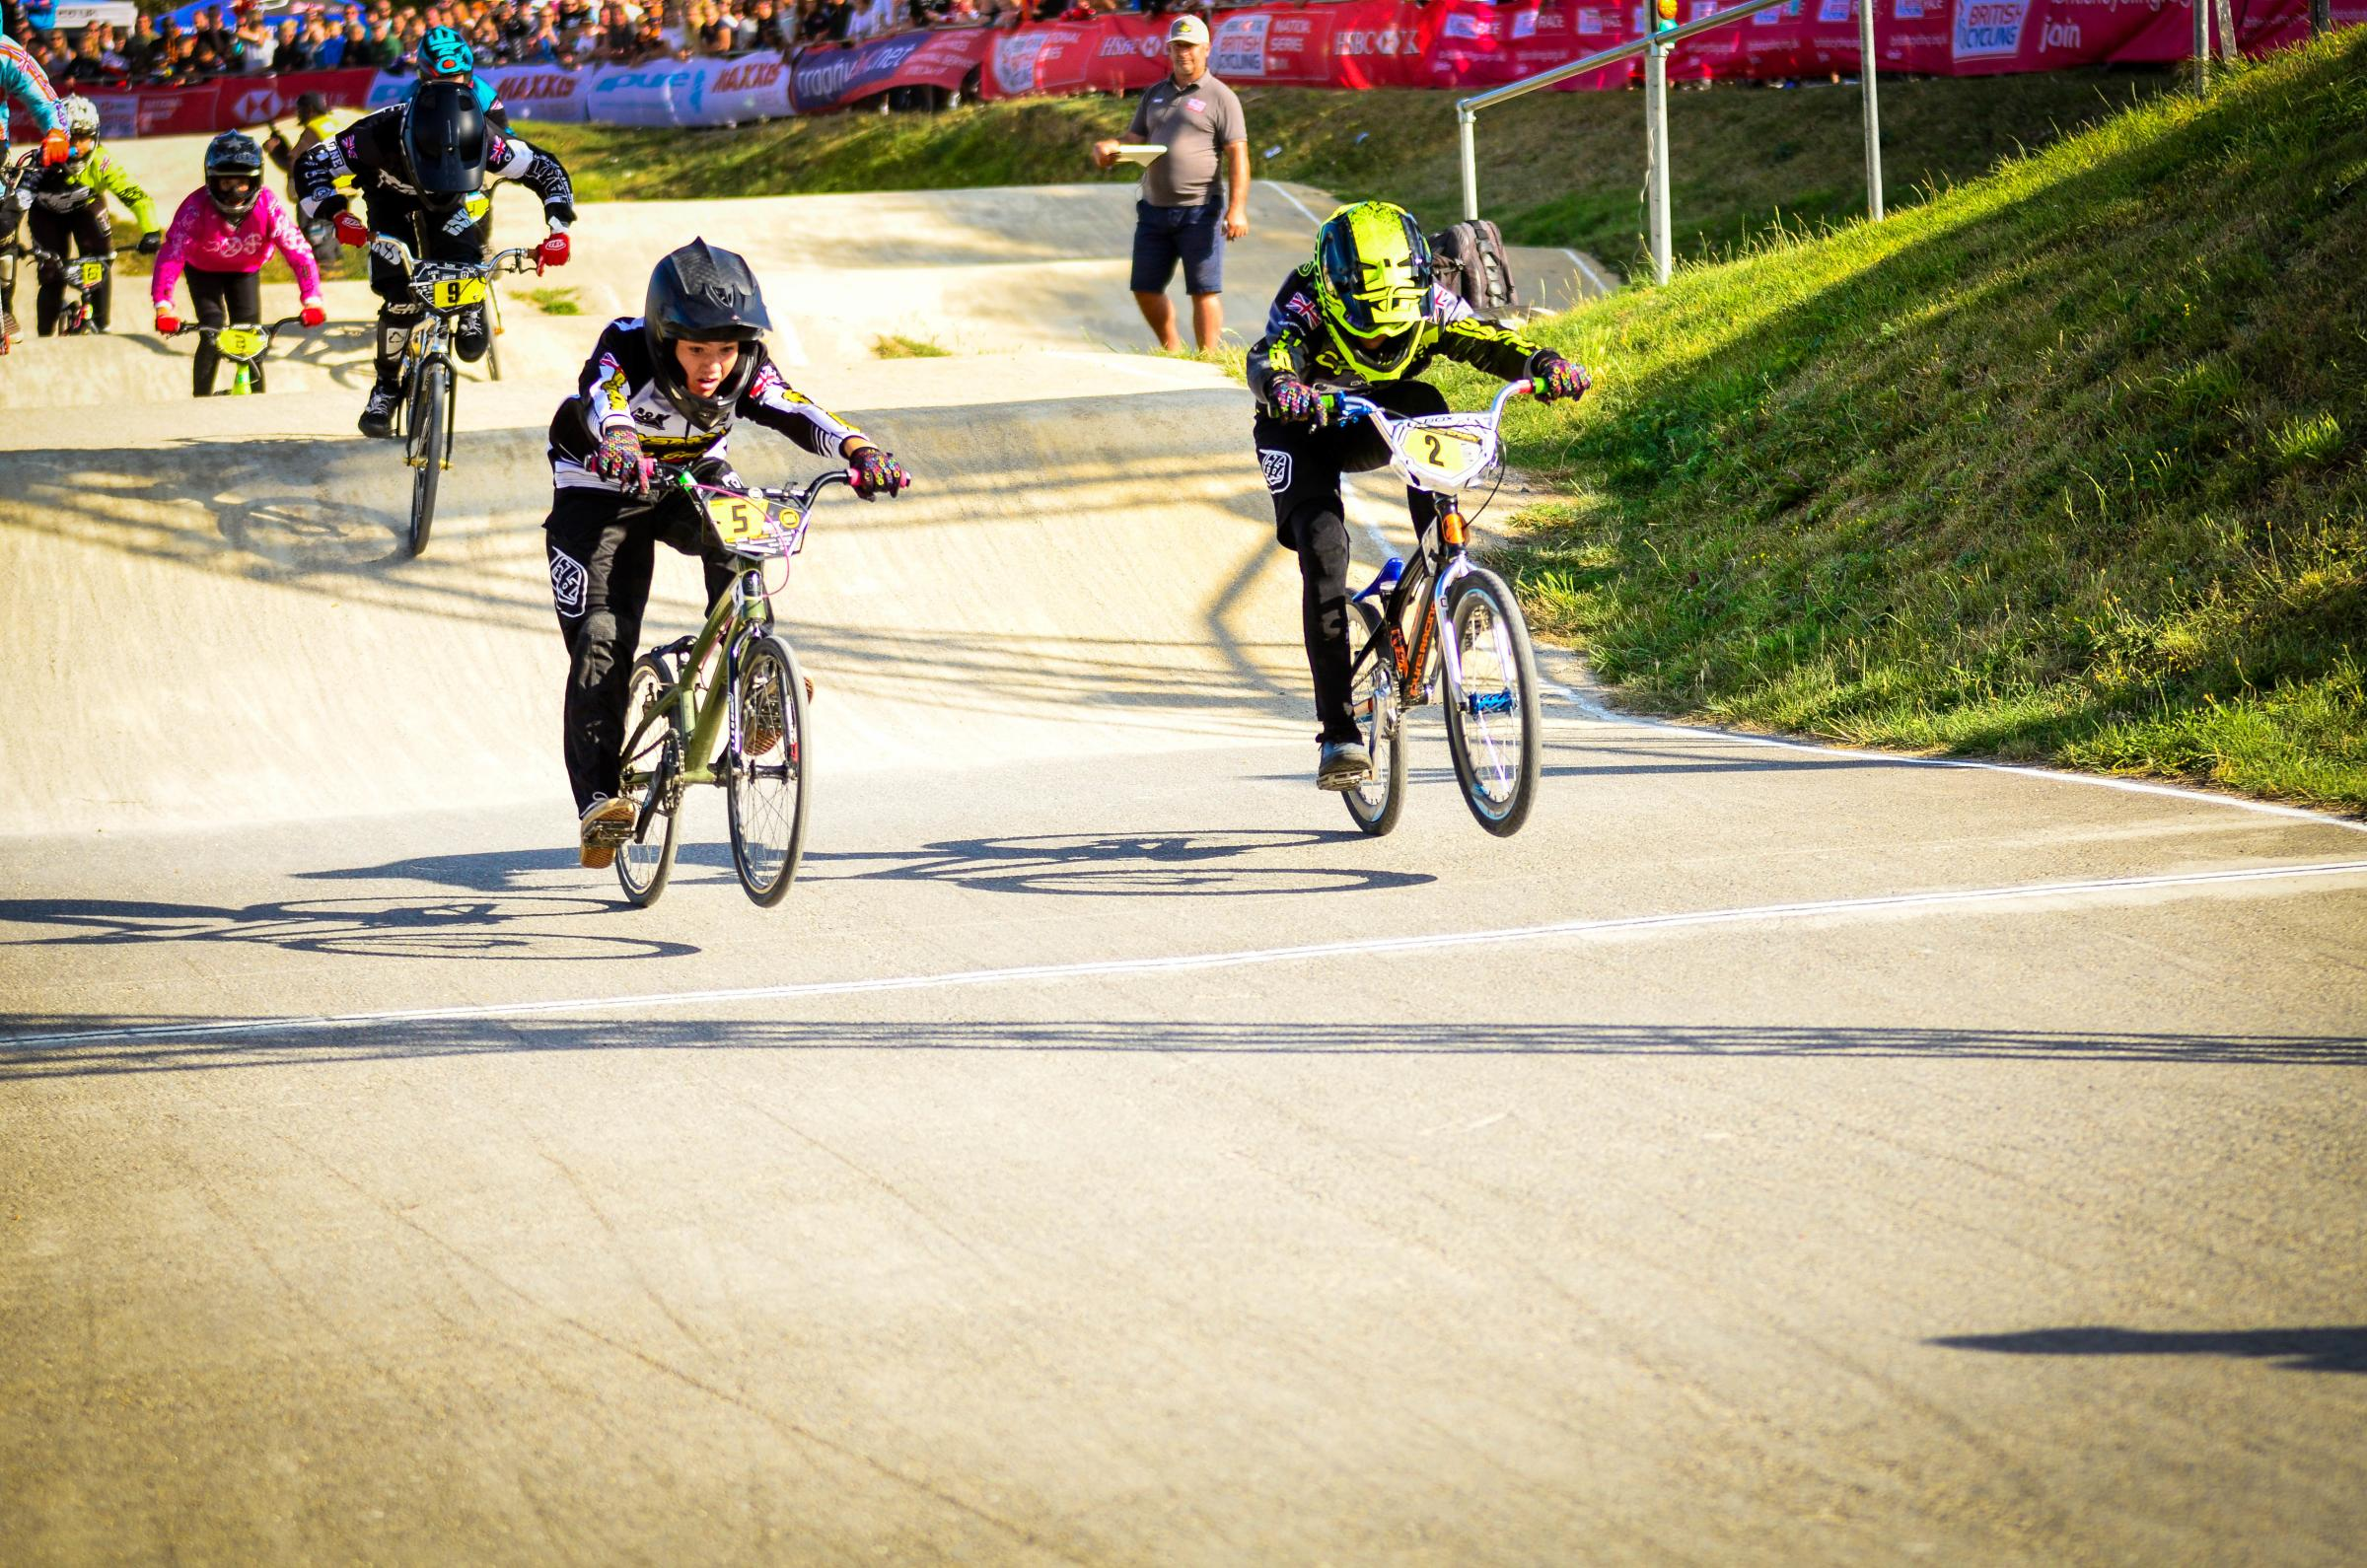 700 riders take part in 'best ever' BMX National Series in Bournemouth